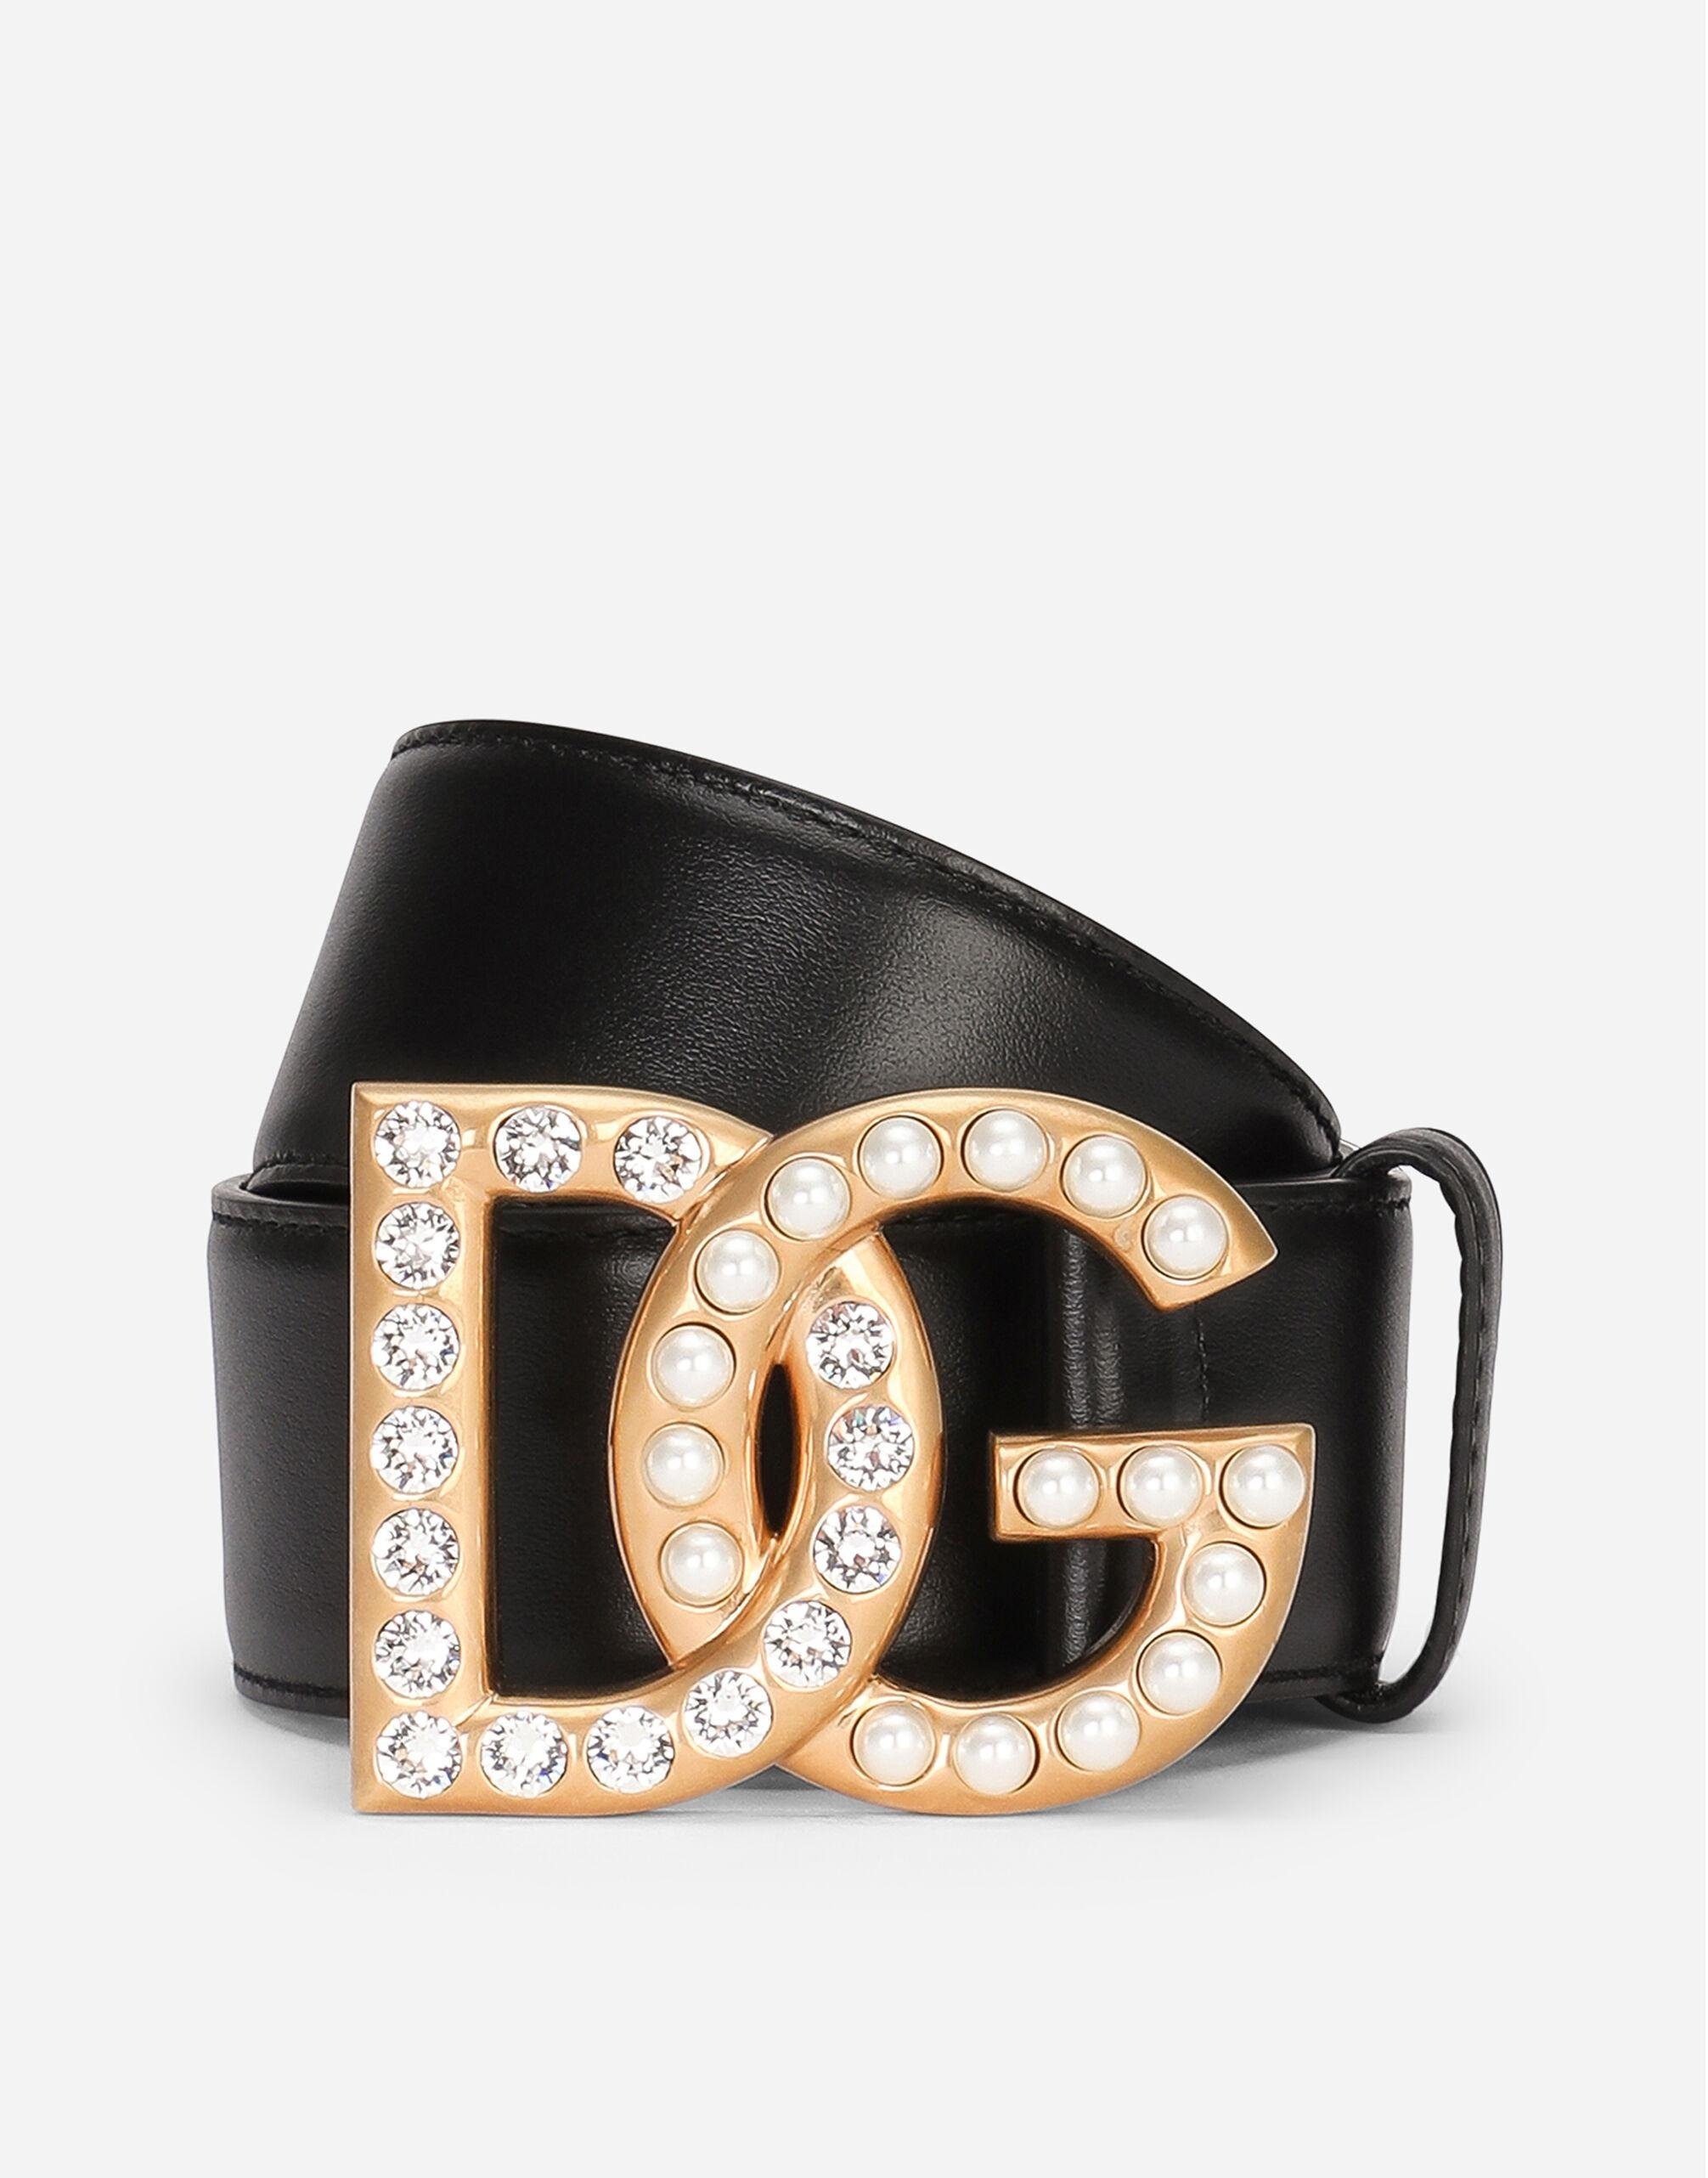 Calfskin belt with DG logo with rhinestones and pearls